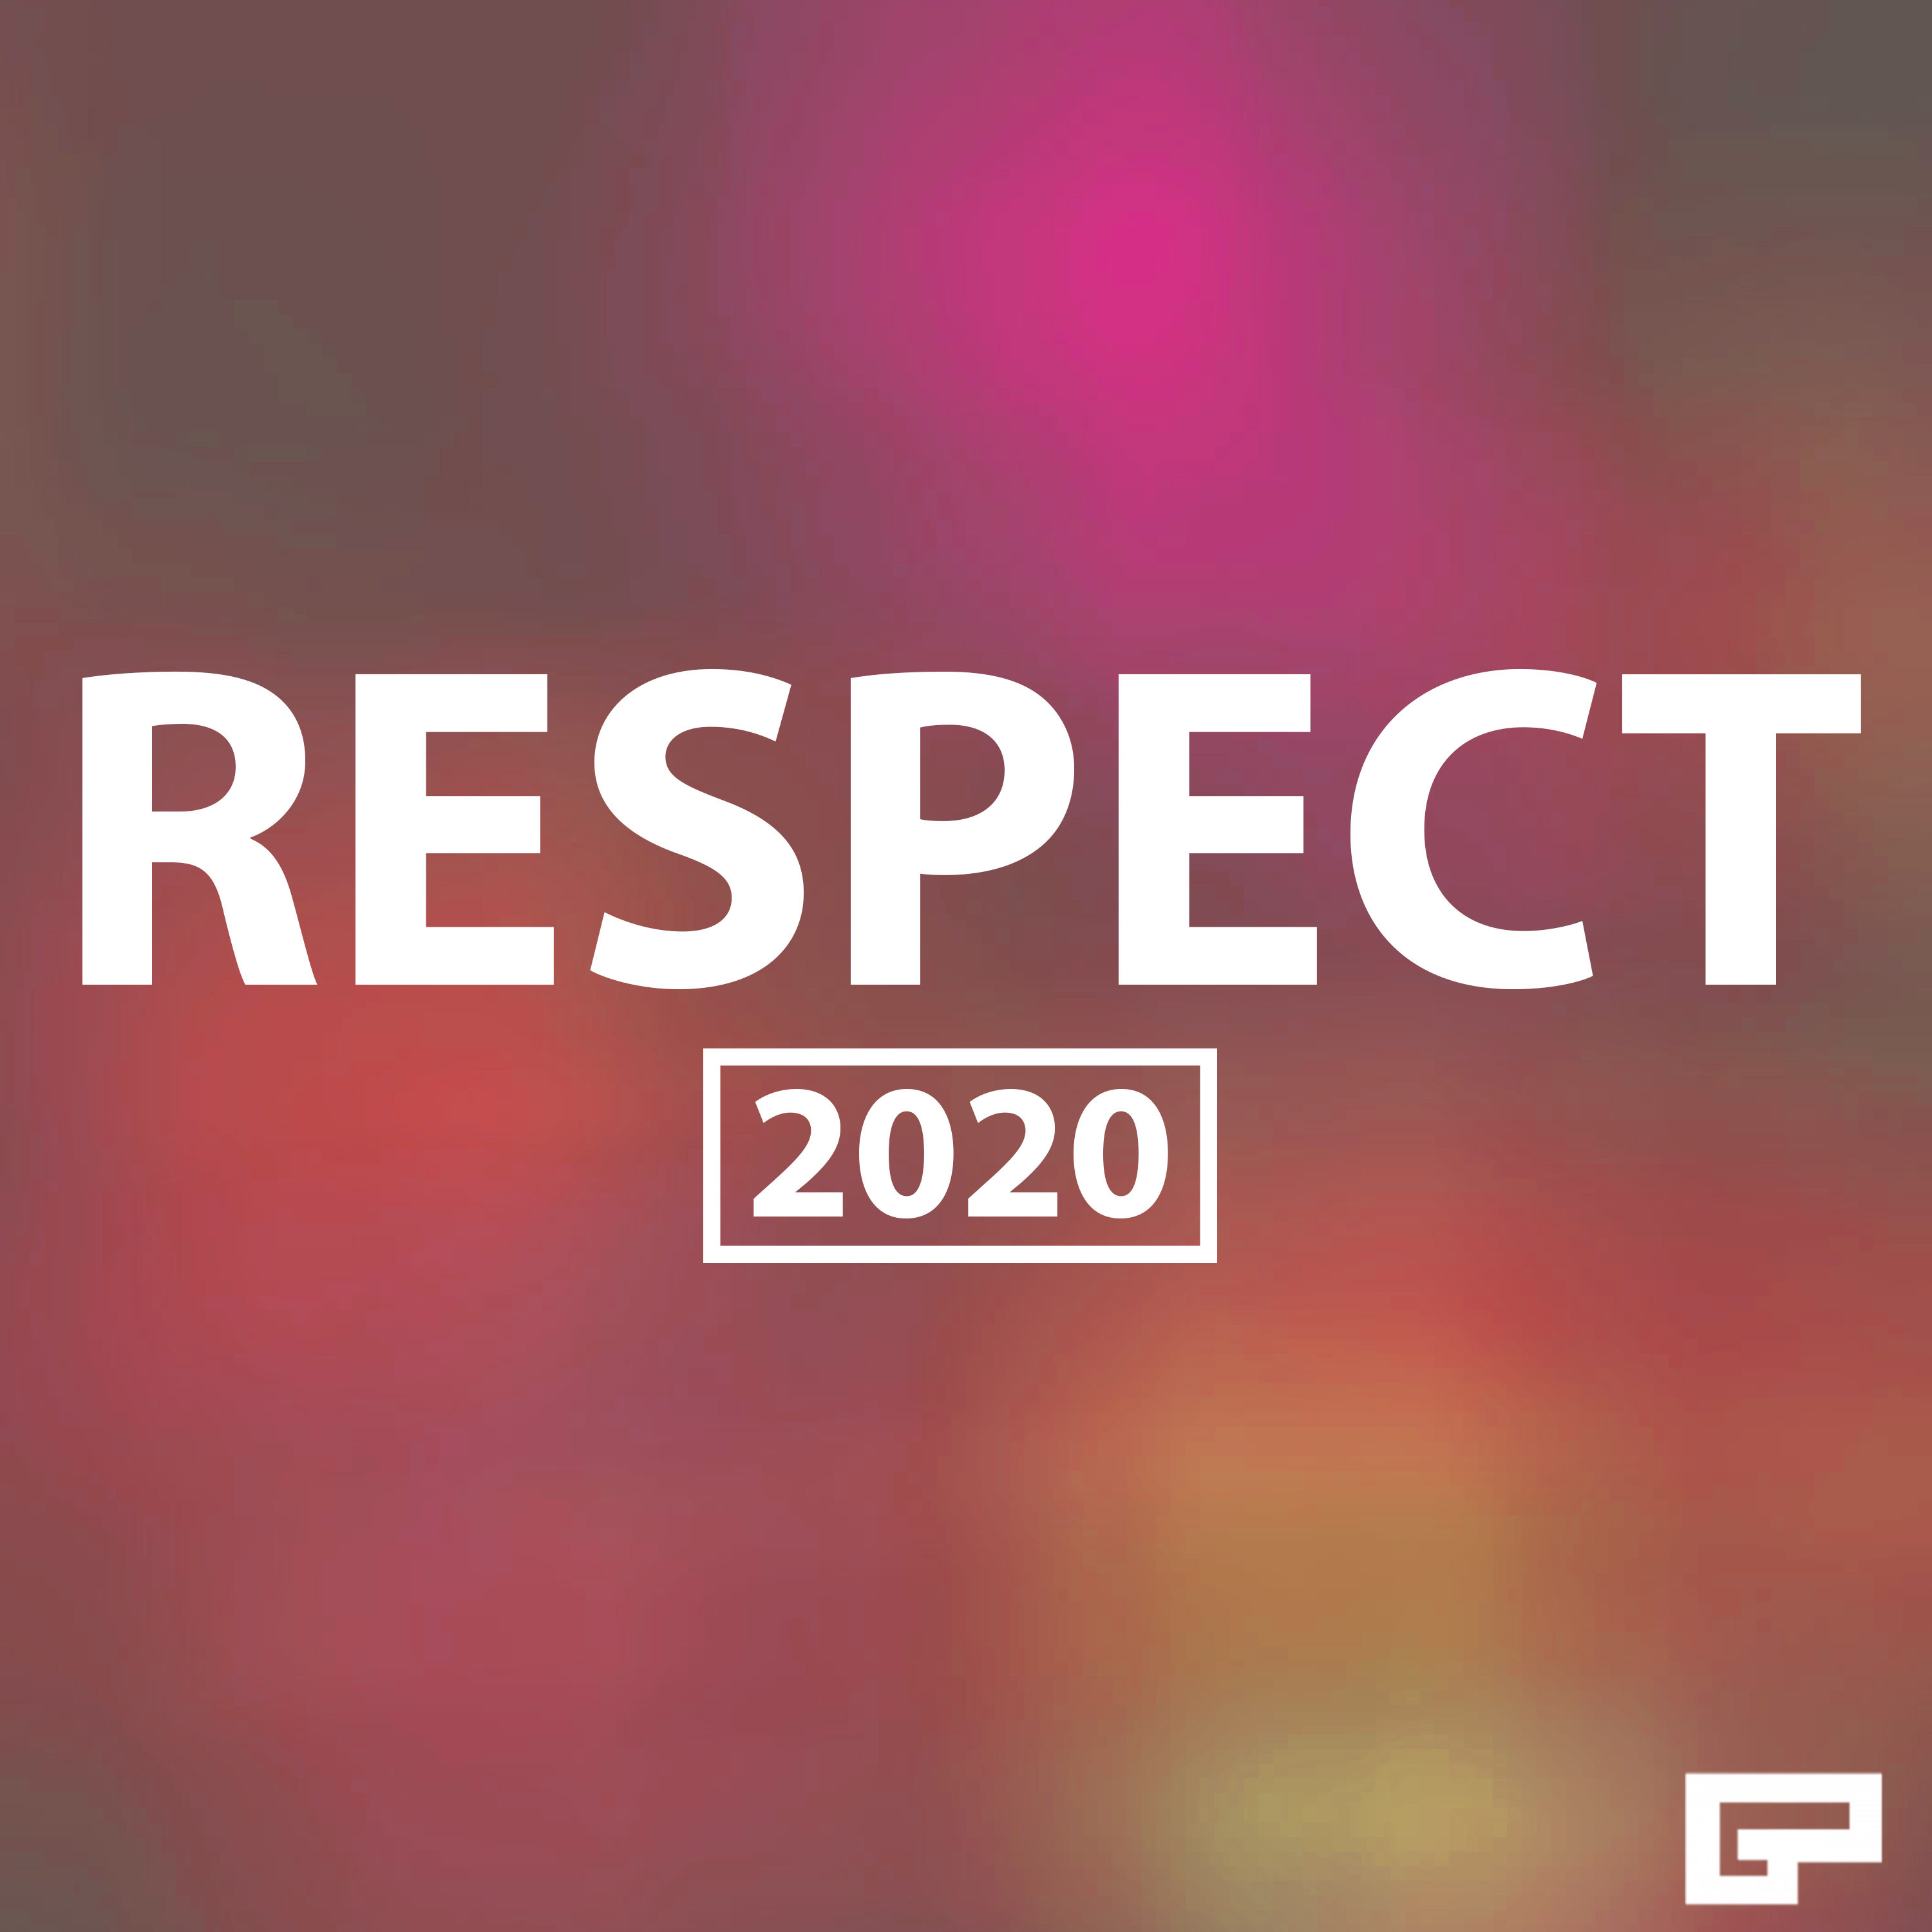 Respect 2020 Image